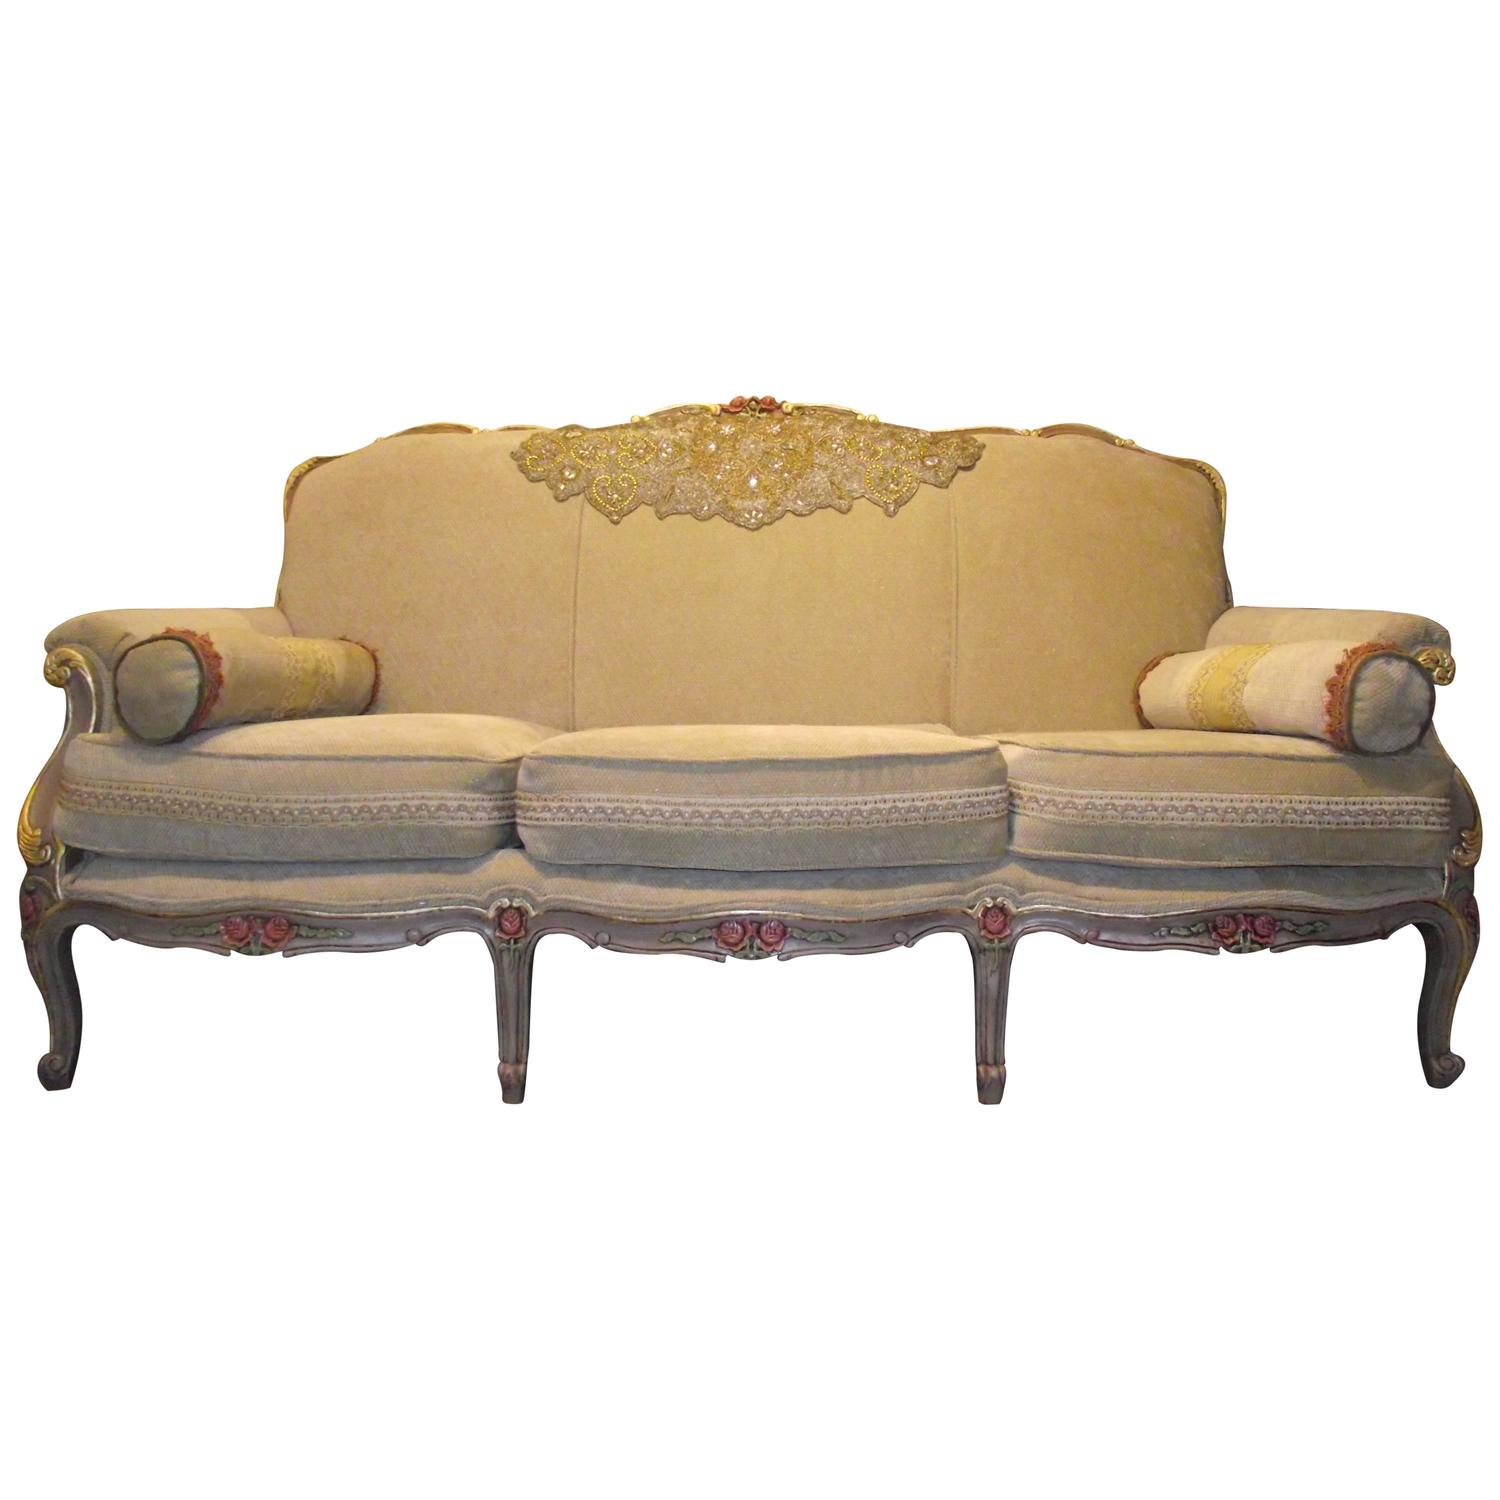 Napoleon iii french style sofa in beige chenille frame for Beige chenille sectional sofa